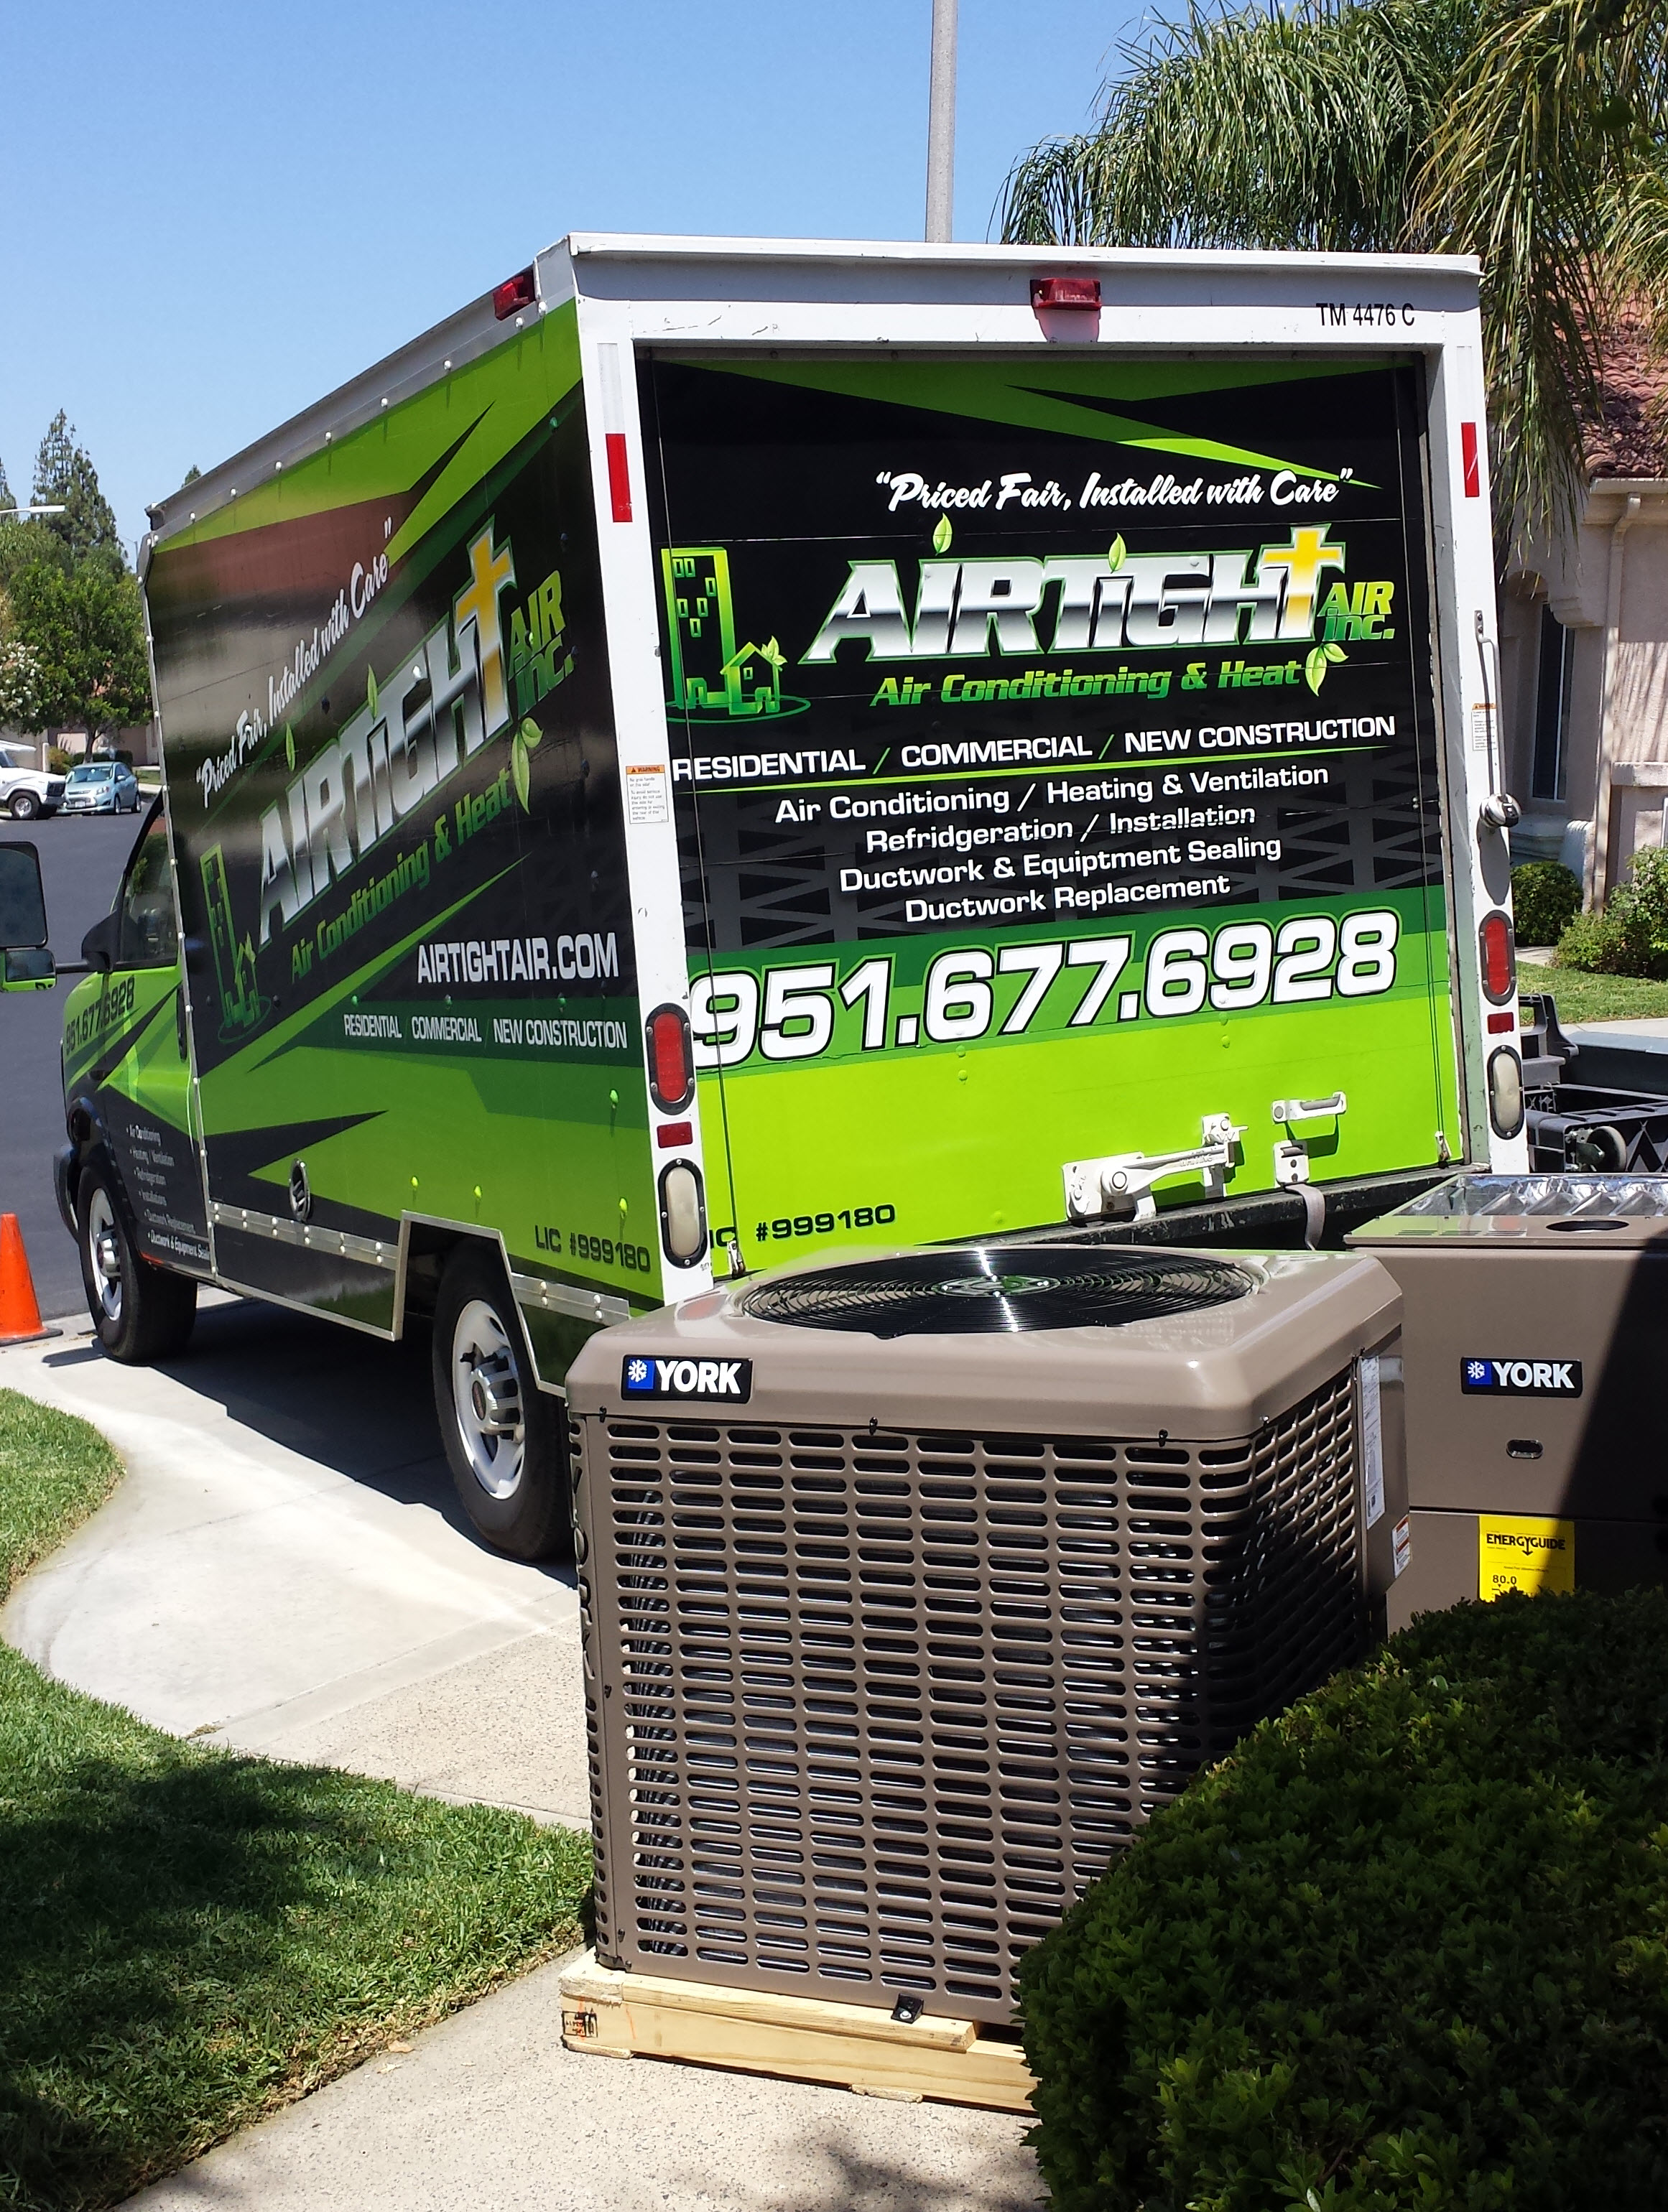 HVAC Company in Murrieta